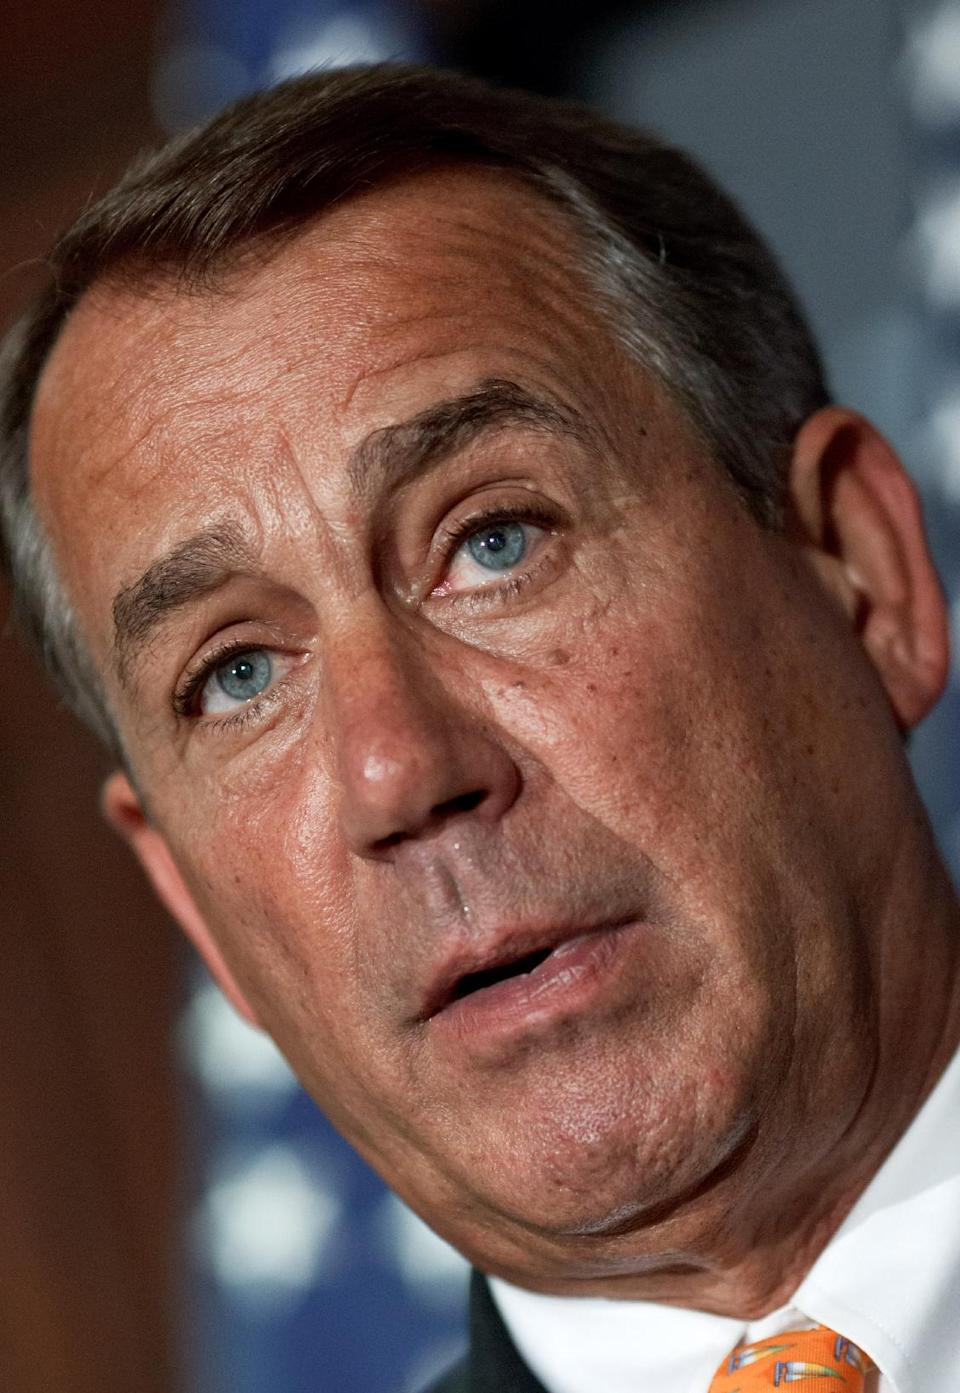 House Speaker John Boehner of Ohio, accompanied by fellow GOP leaders meets with reporters at the Republican National Committee on Capitol Hill in Washington, Wednesday, Aug. 1, 2012.   (AP Photo/J. Scott Applewhite)